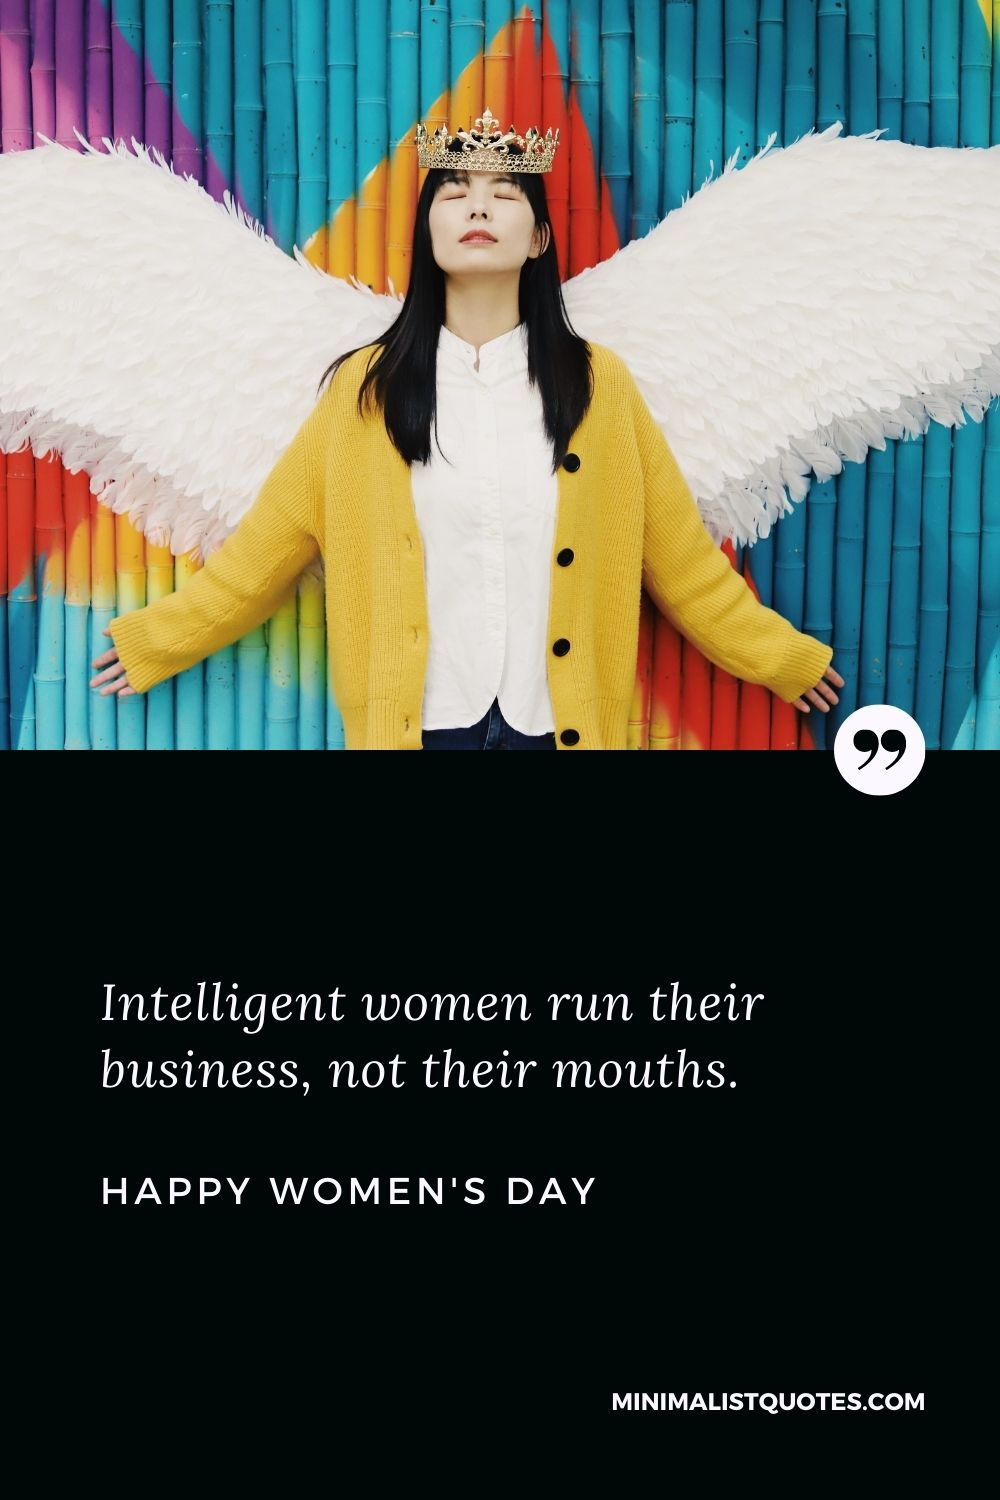 Women's Day Wish & Message With Image: Intelligent women run their business, not their mouths. Happy Women's Day!